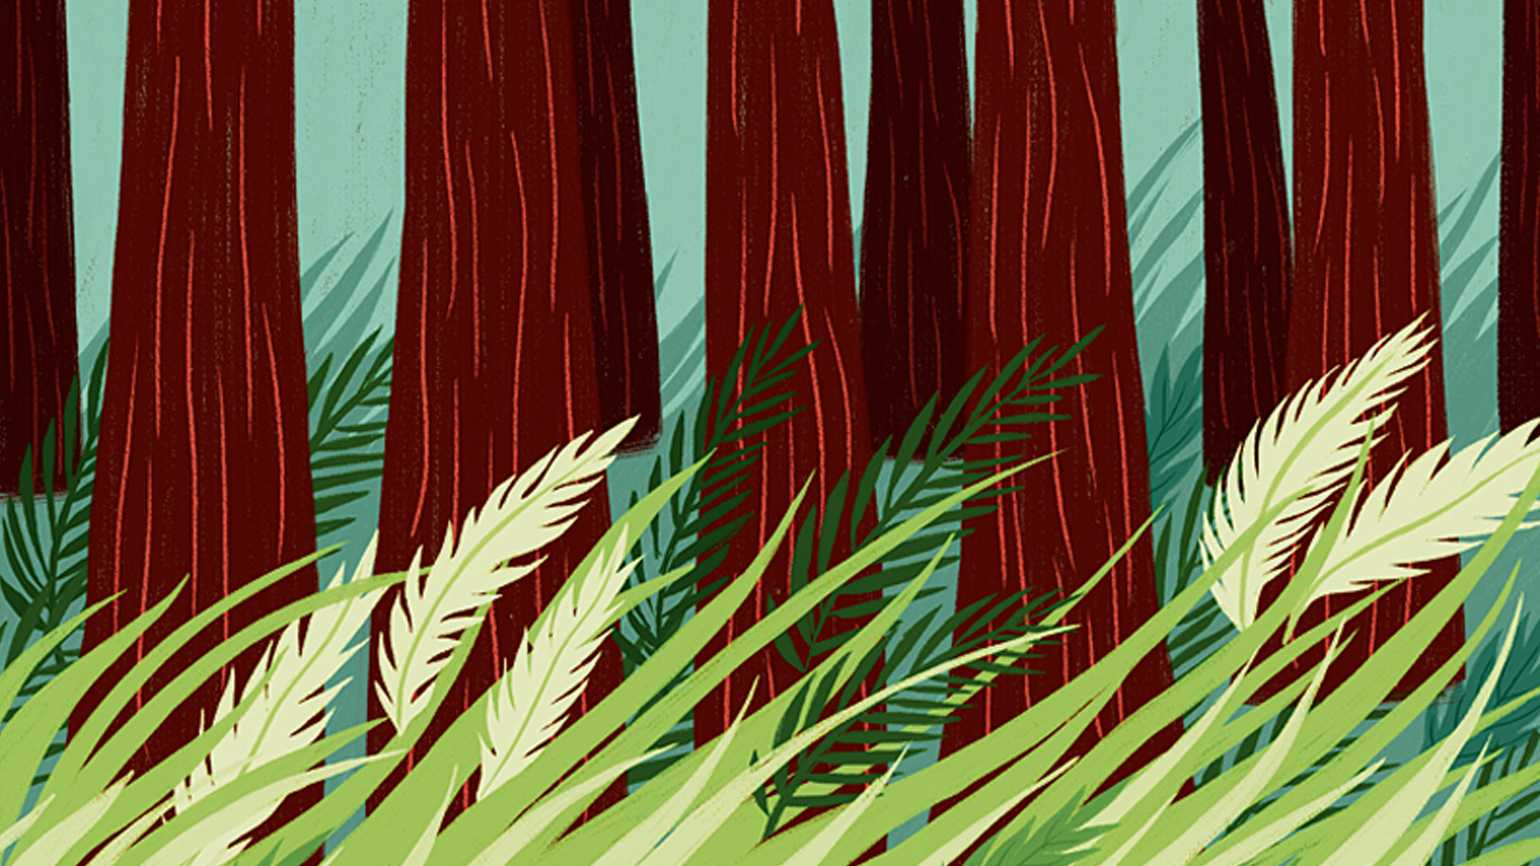 An artist's rendering of wind blowing through the redwoods